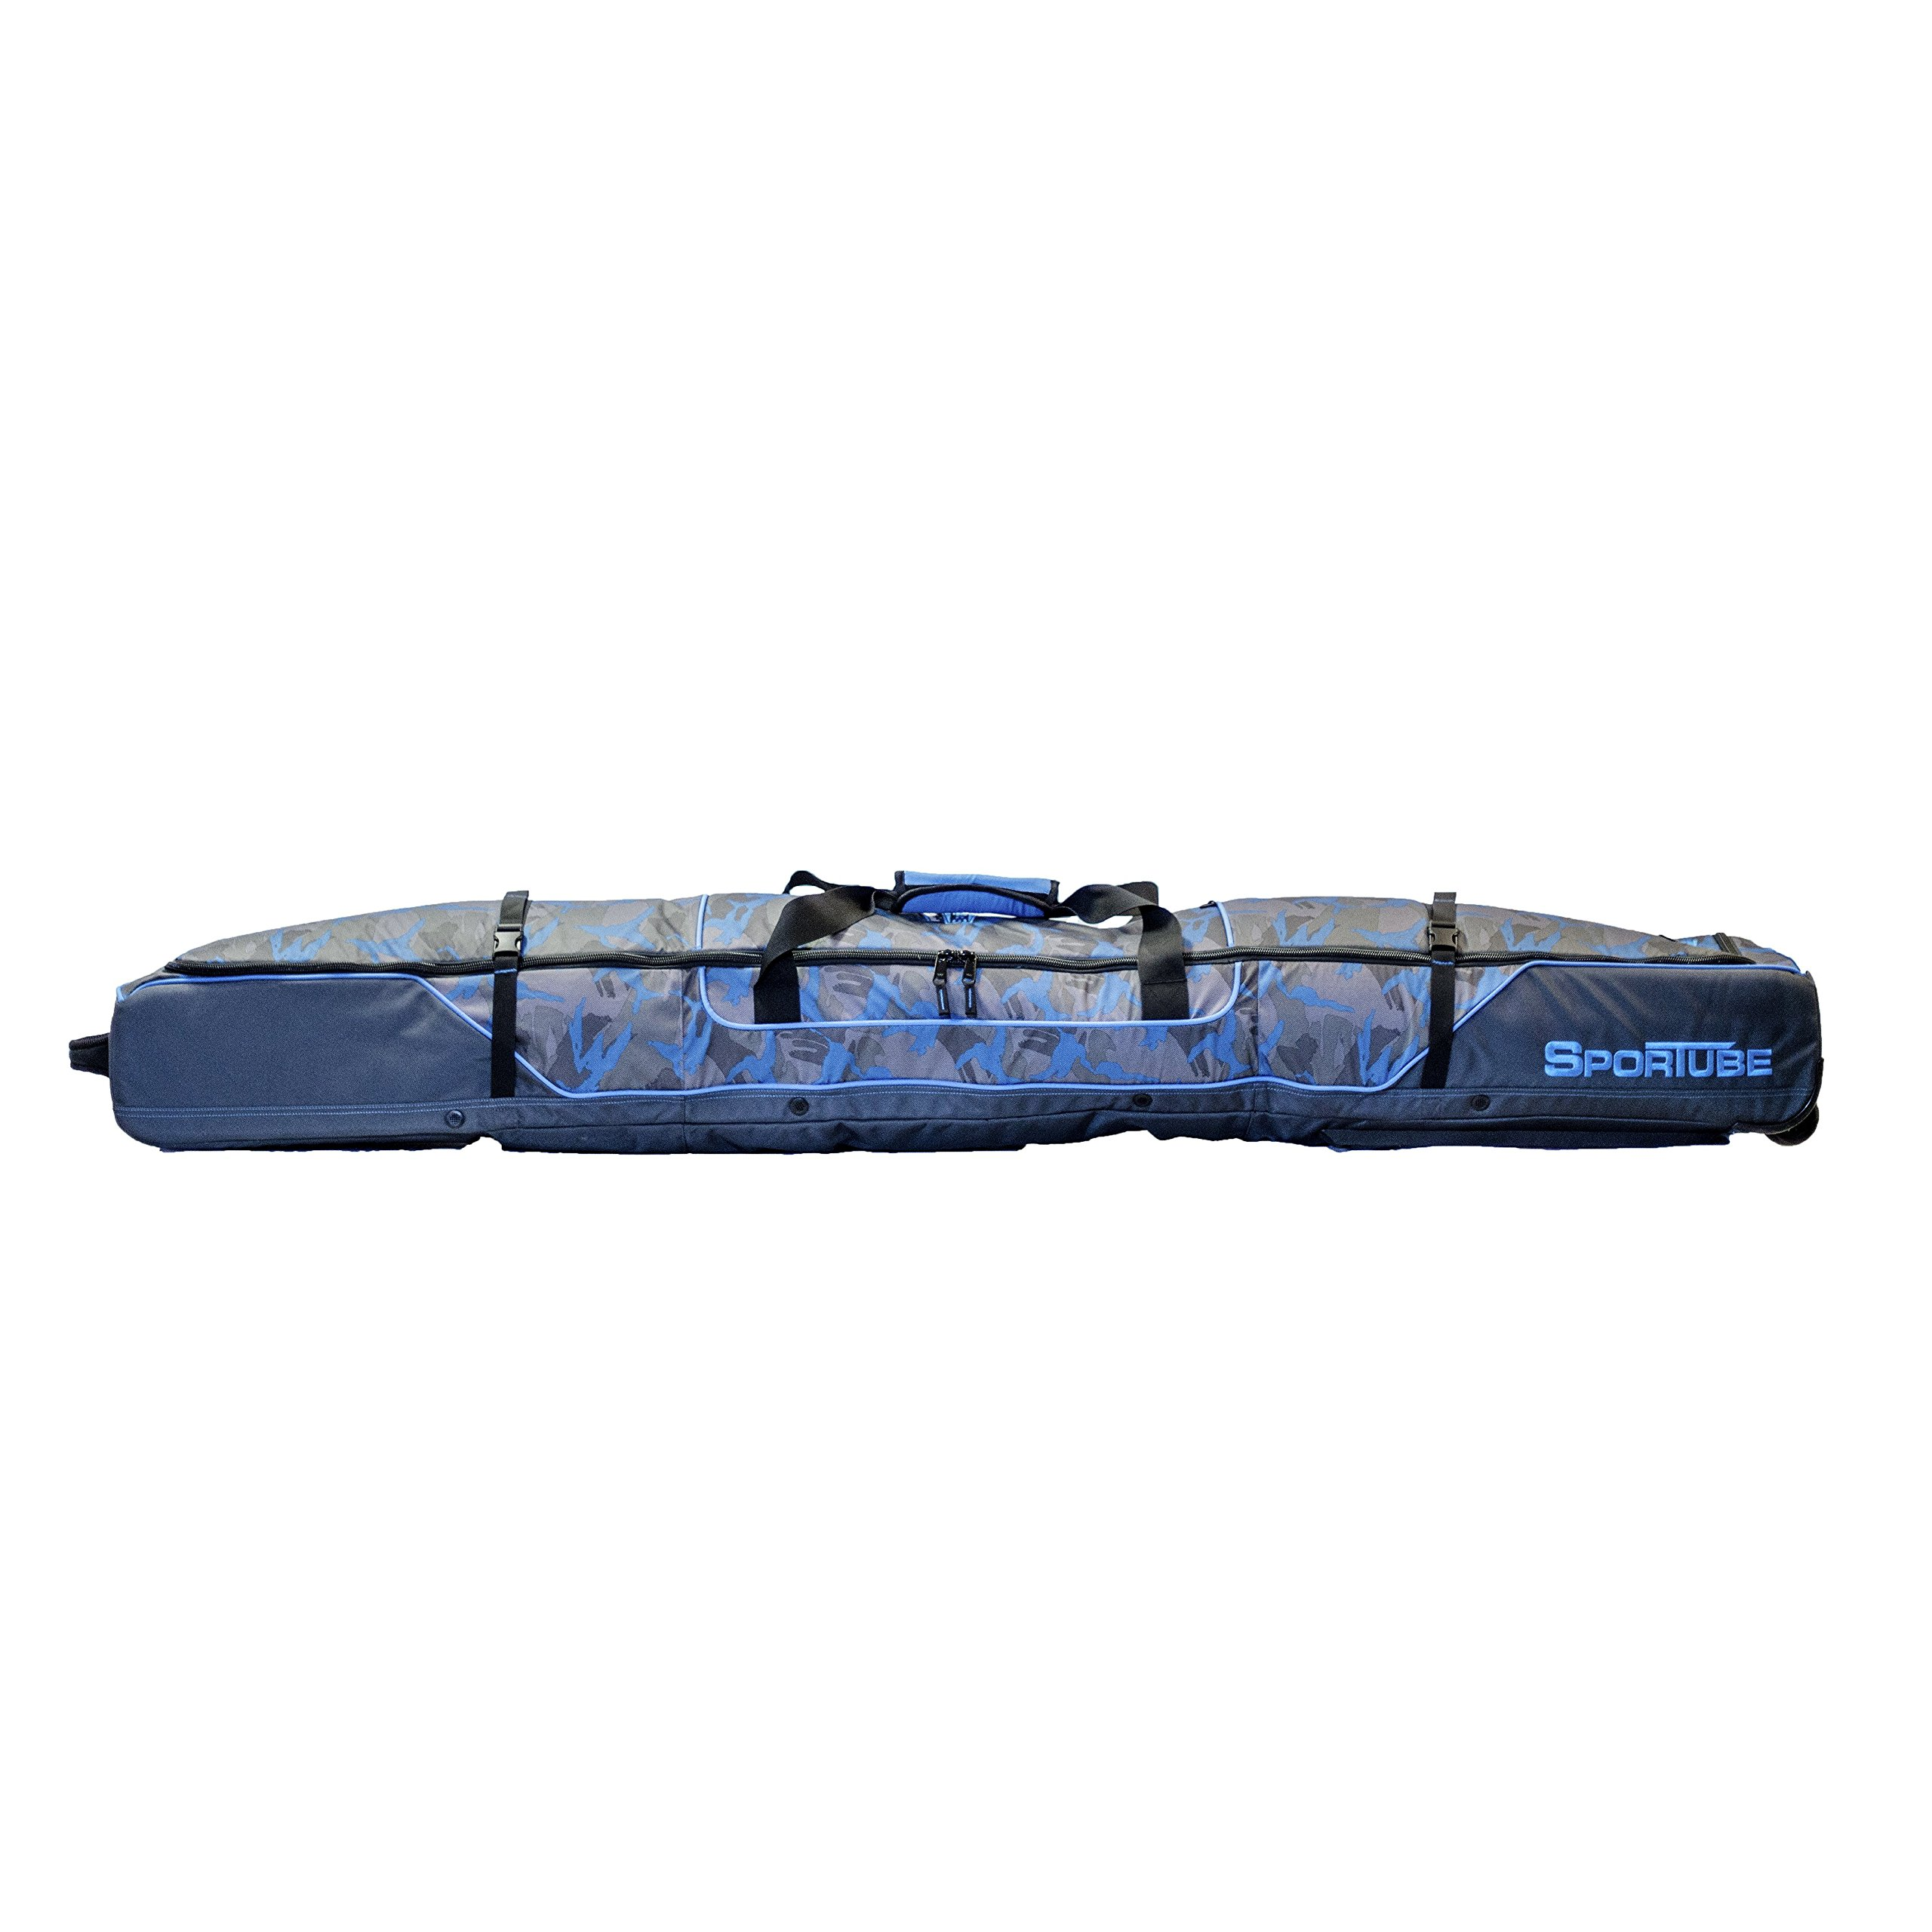 Sportube Ski shield Double Padded Ski Bag with Gear shield Camo